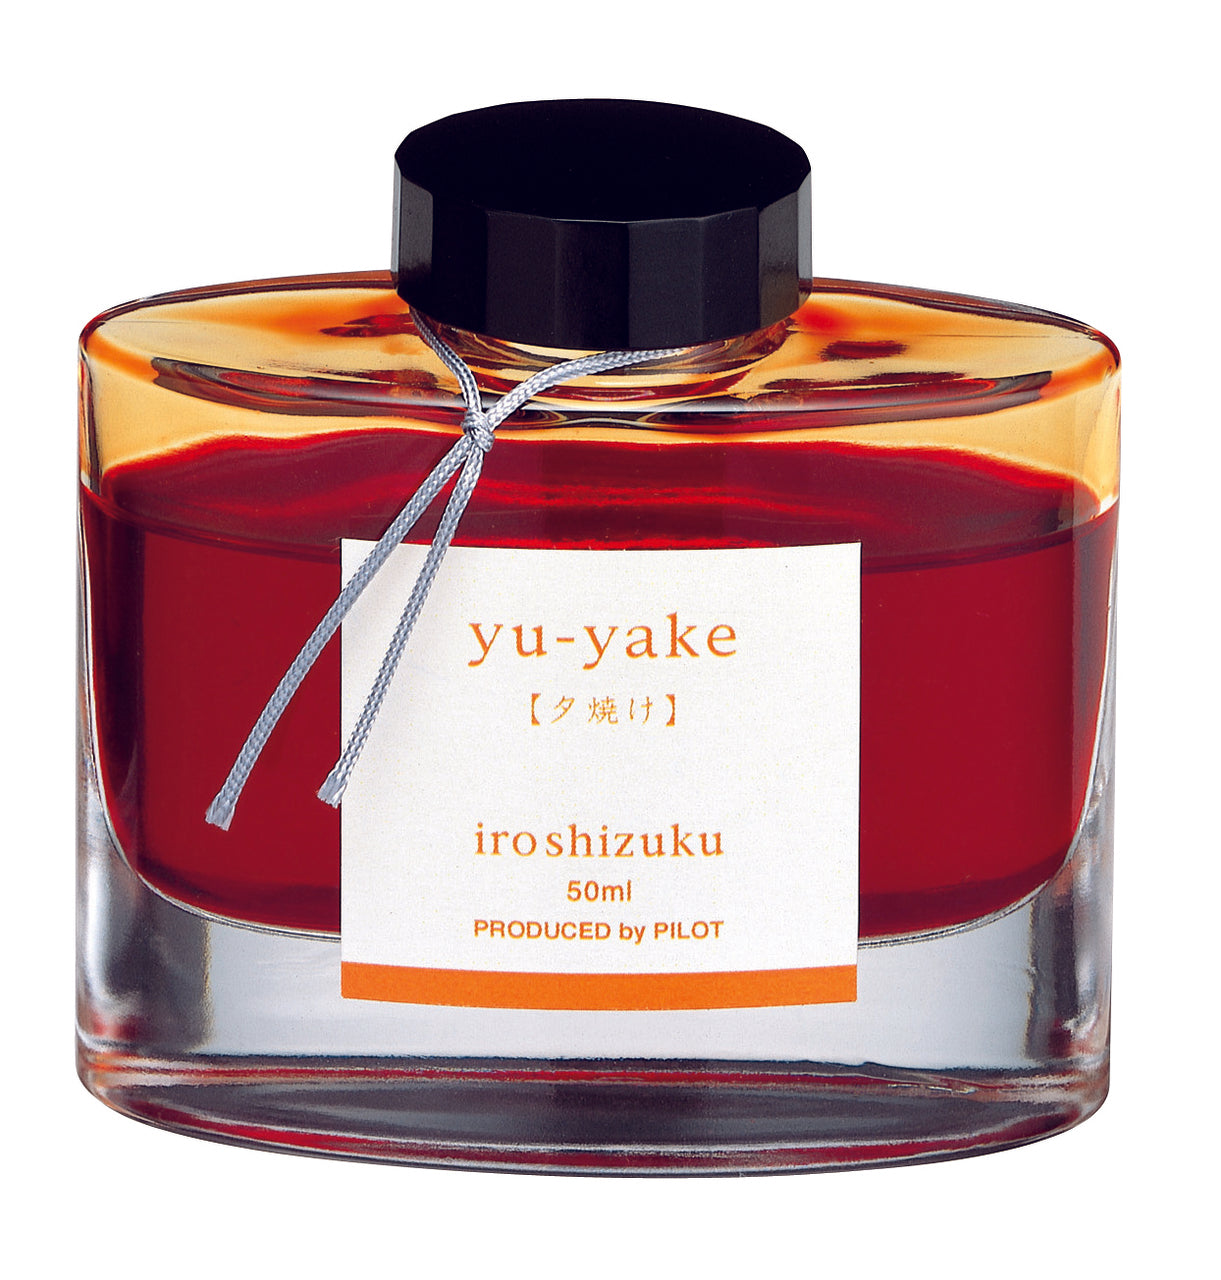 Pilot Iroshizuku Fountain Pen Ink - Yuyake (Sunset) - 50ml Bottle - Fountain Pens Online